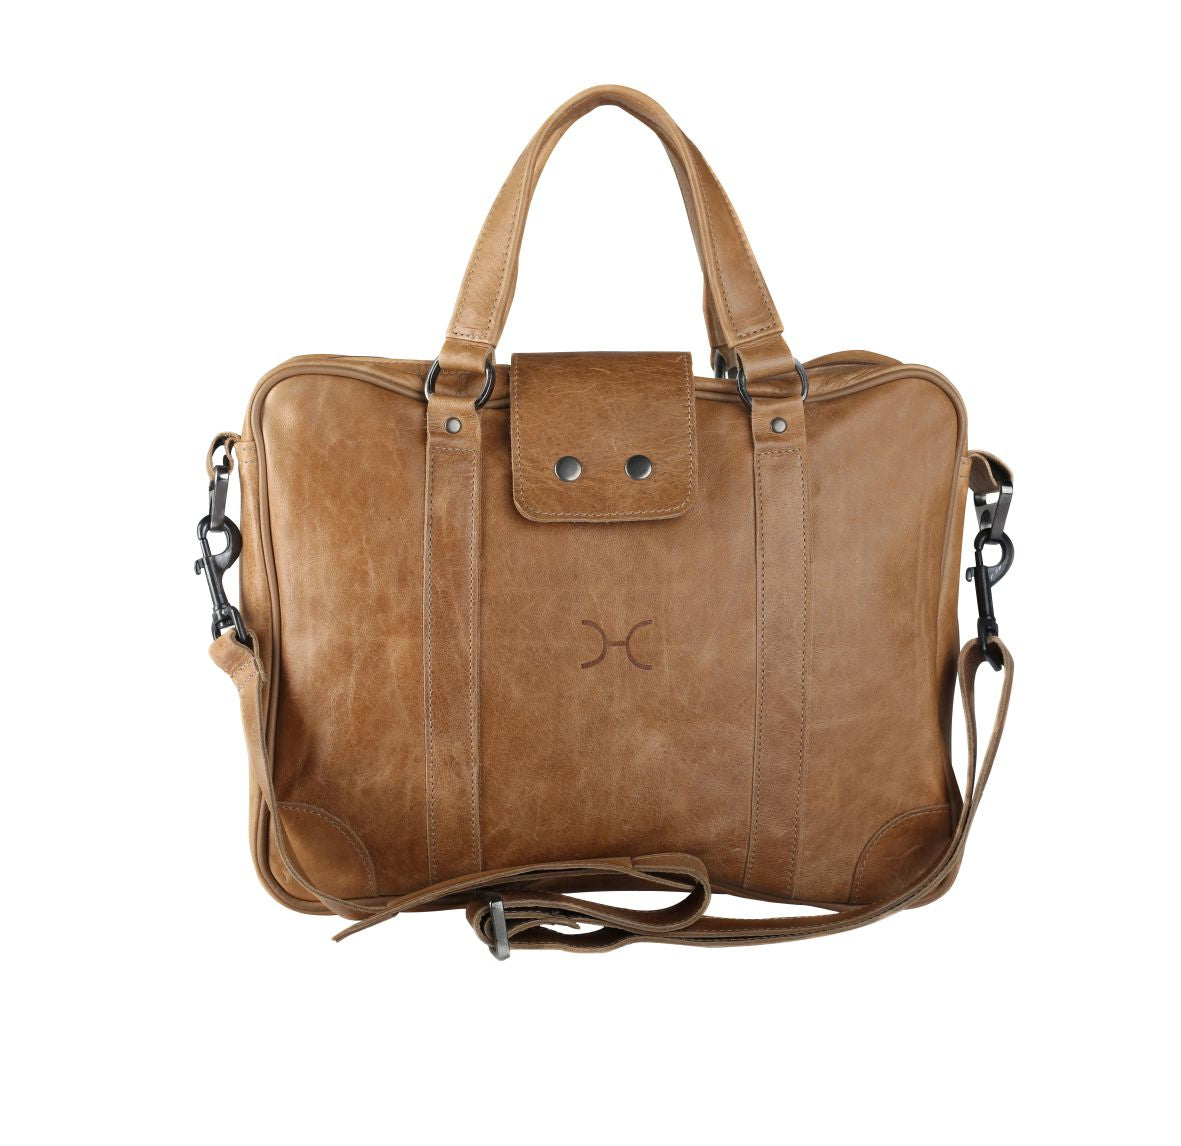 Thandana Laptop Bag - Hazelnut - Zufrique Boutique